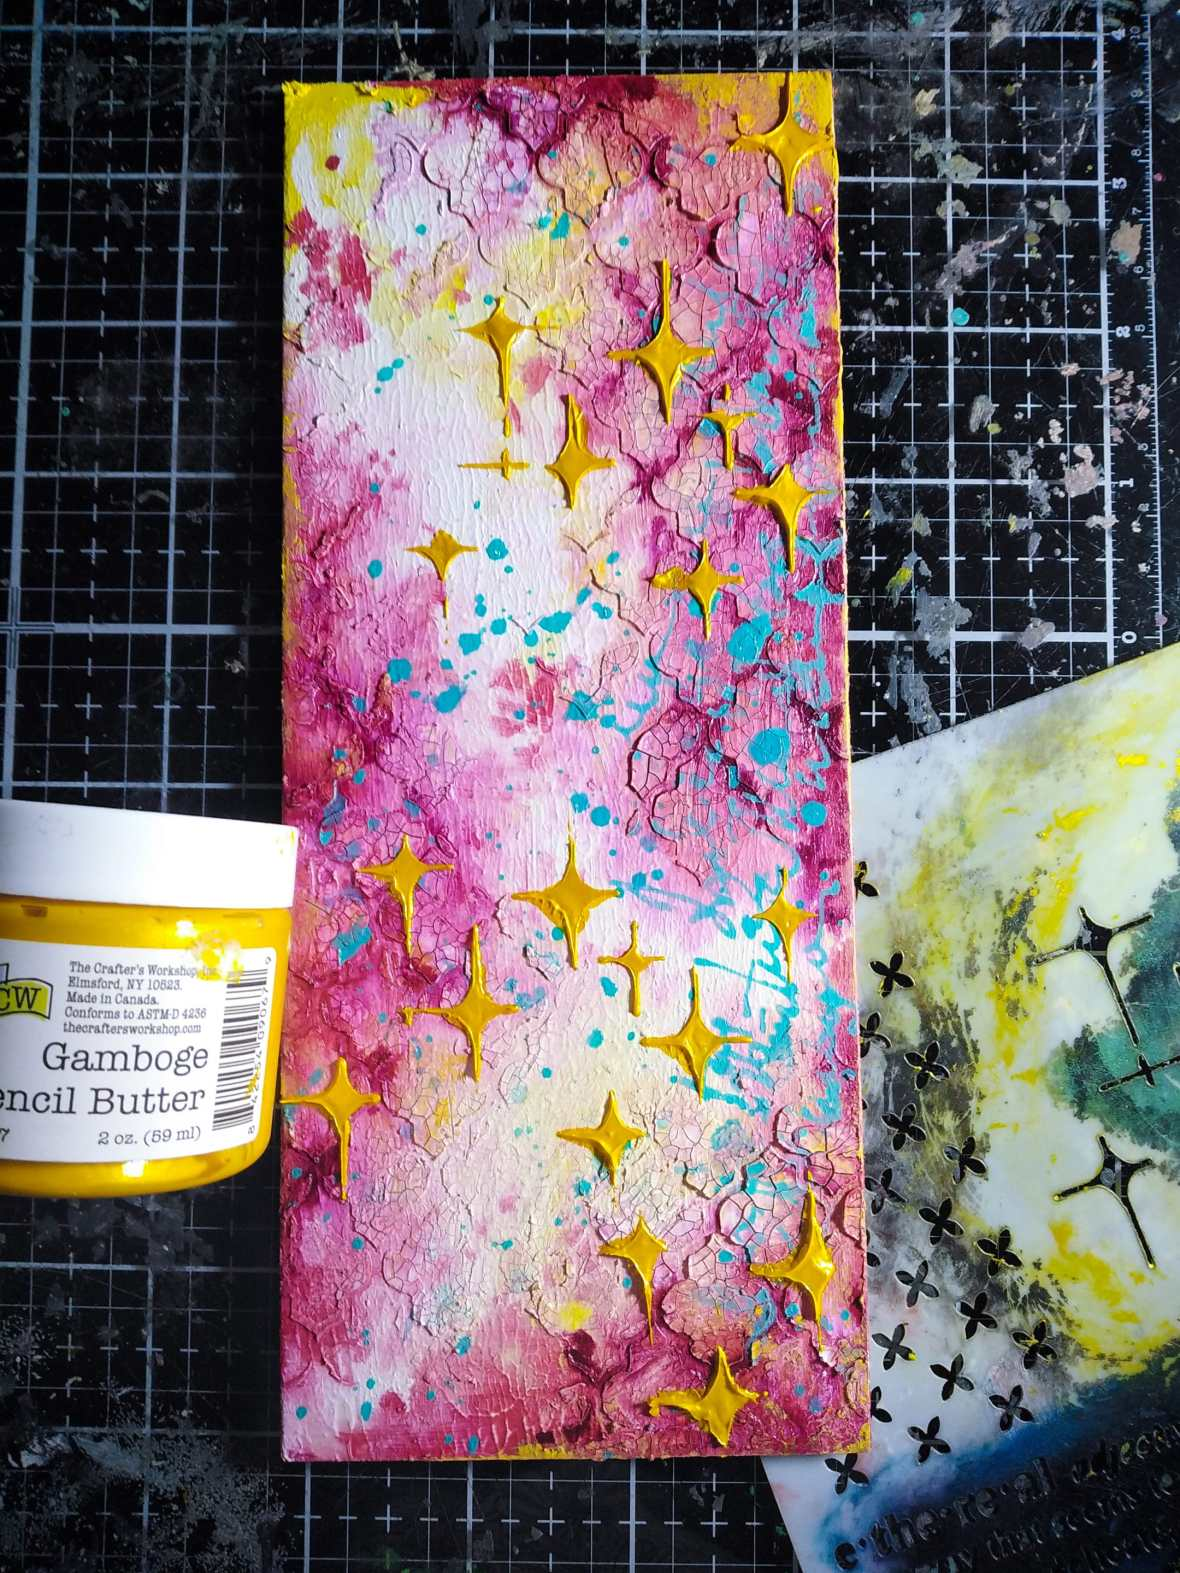 Mixed media project, the Crafter's Workshop stencils, acrylic paints, stencil butter